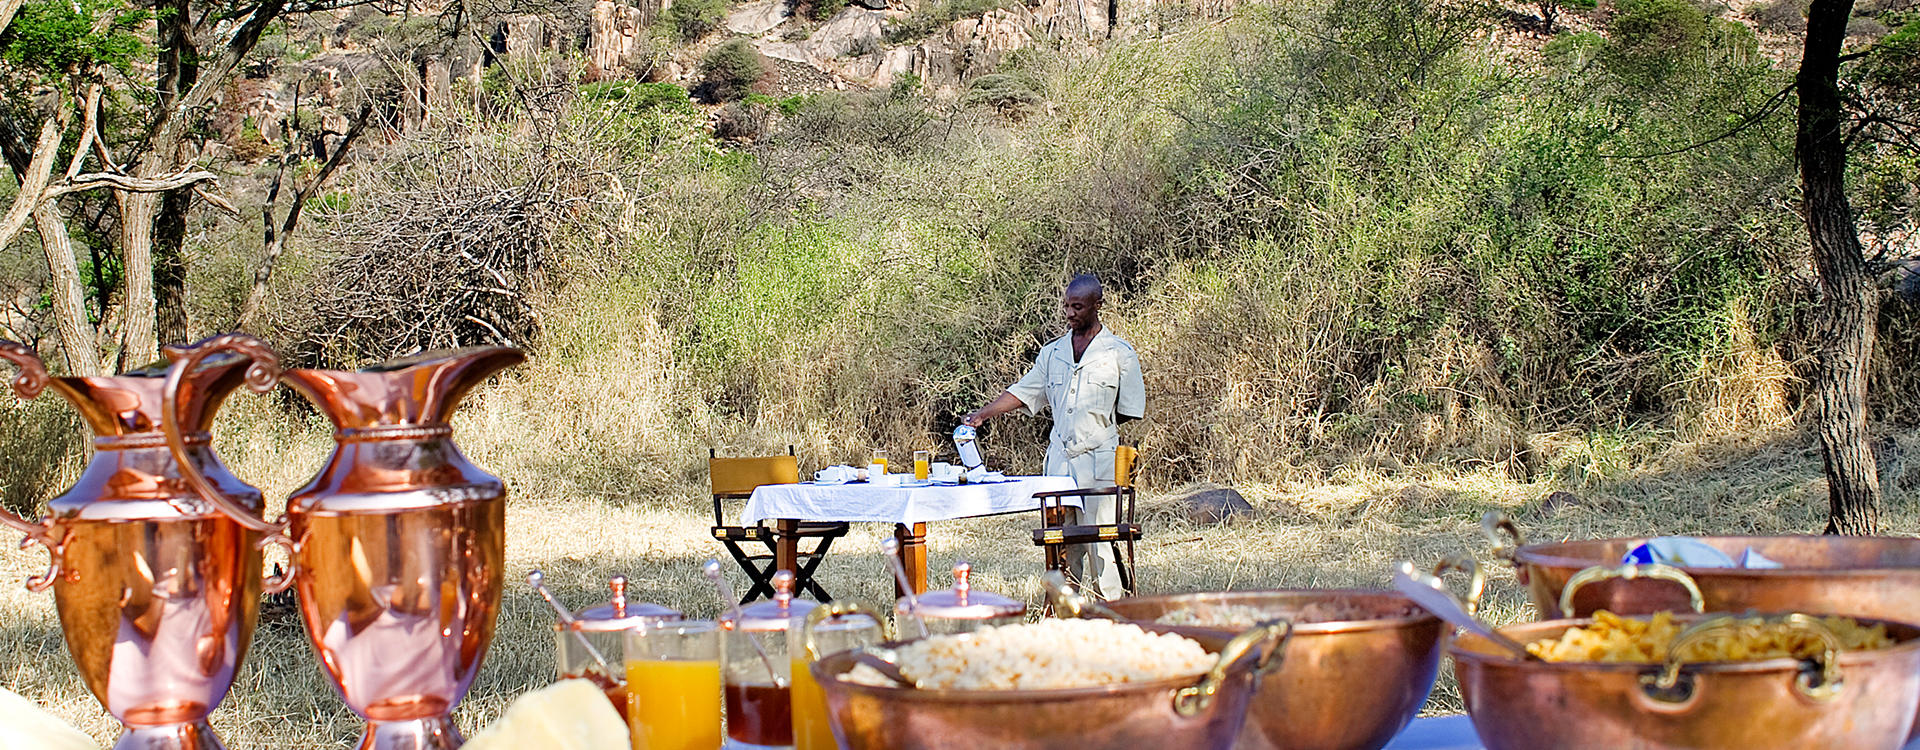 EL-Elsa-Kopje_Bush-Breakfast